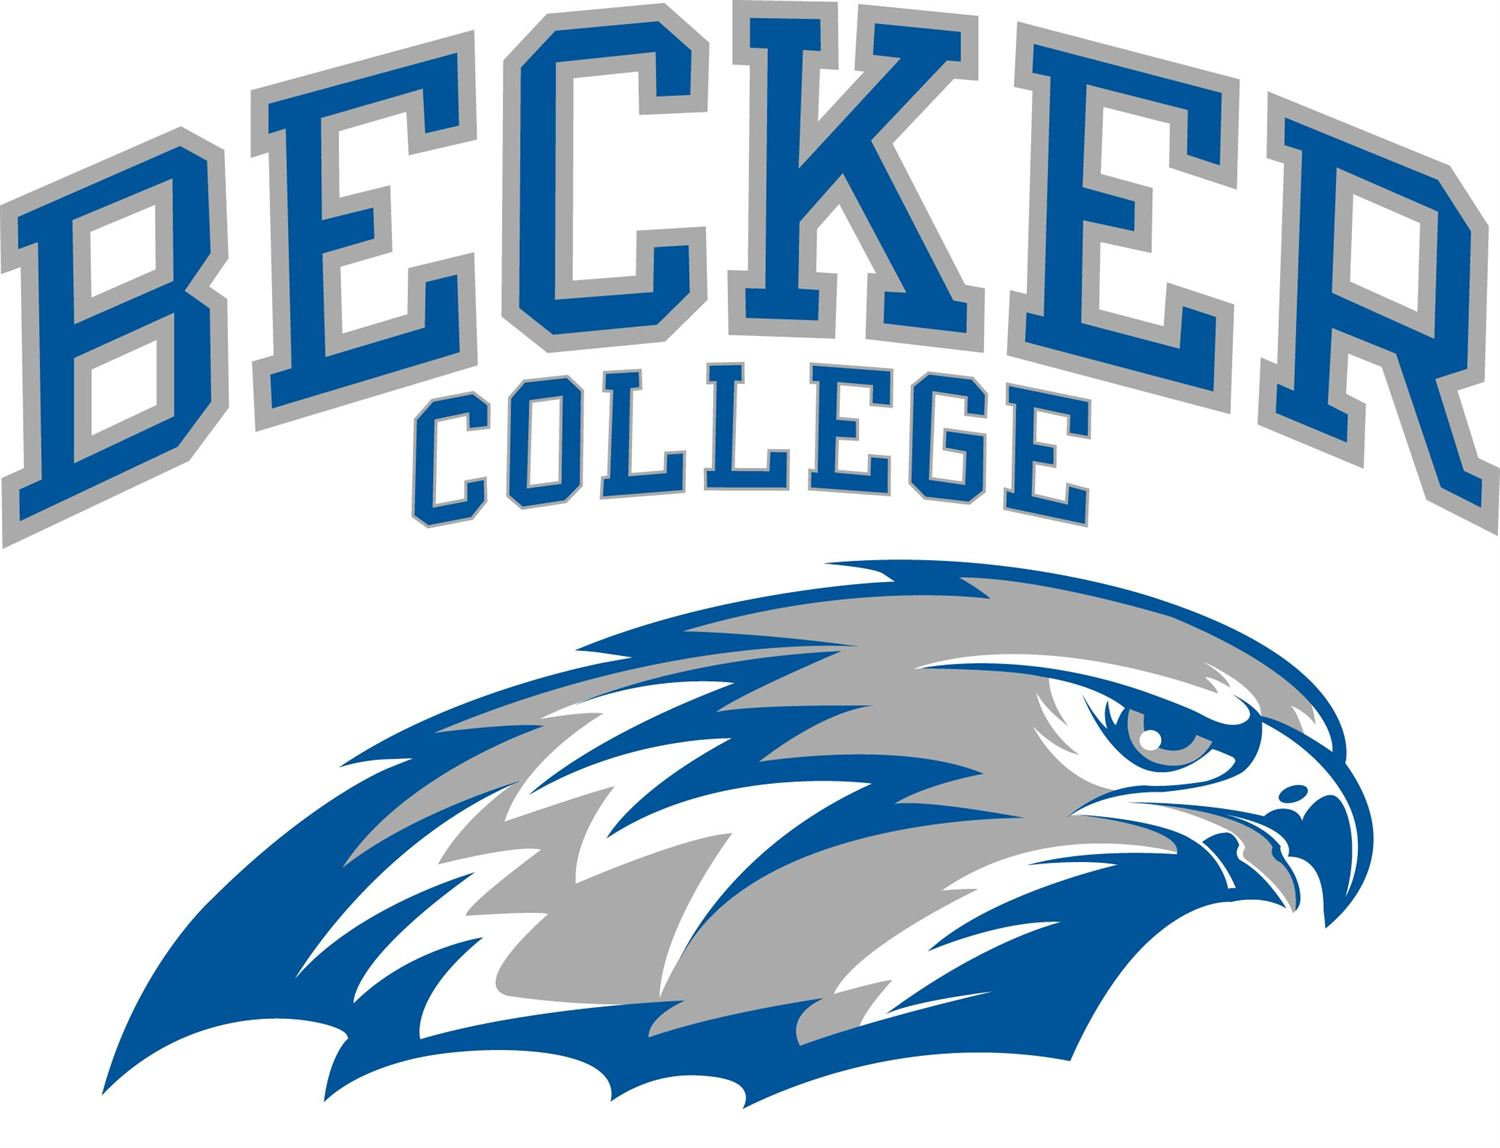 Becker College - Mens Varsity Ice Hockey